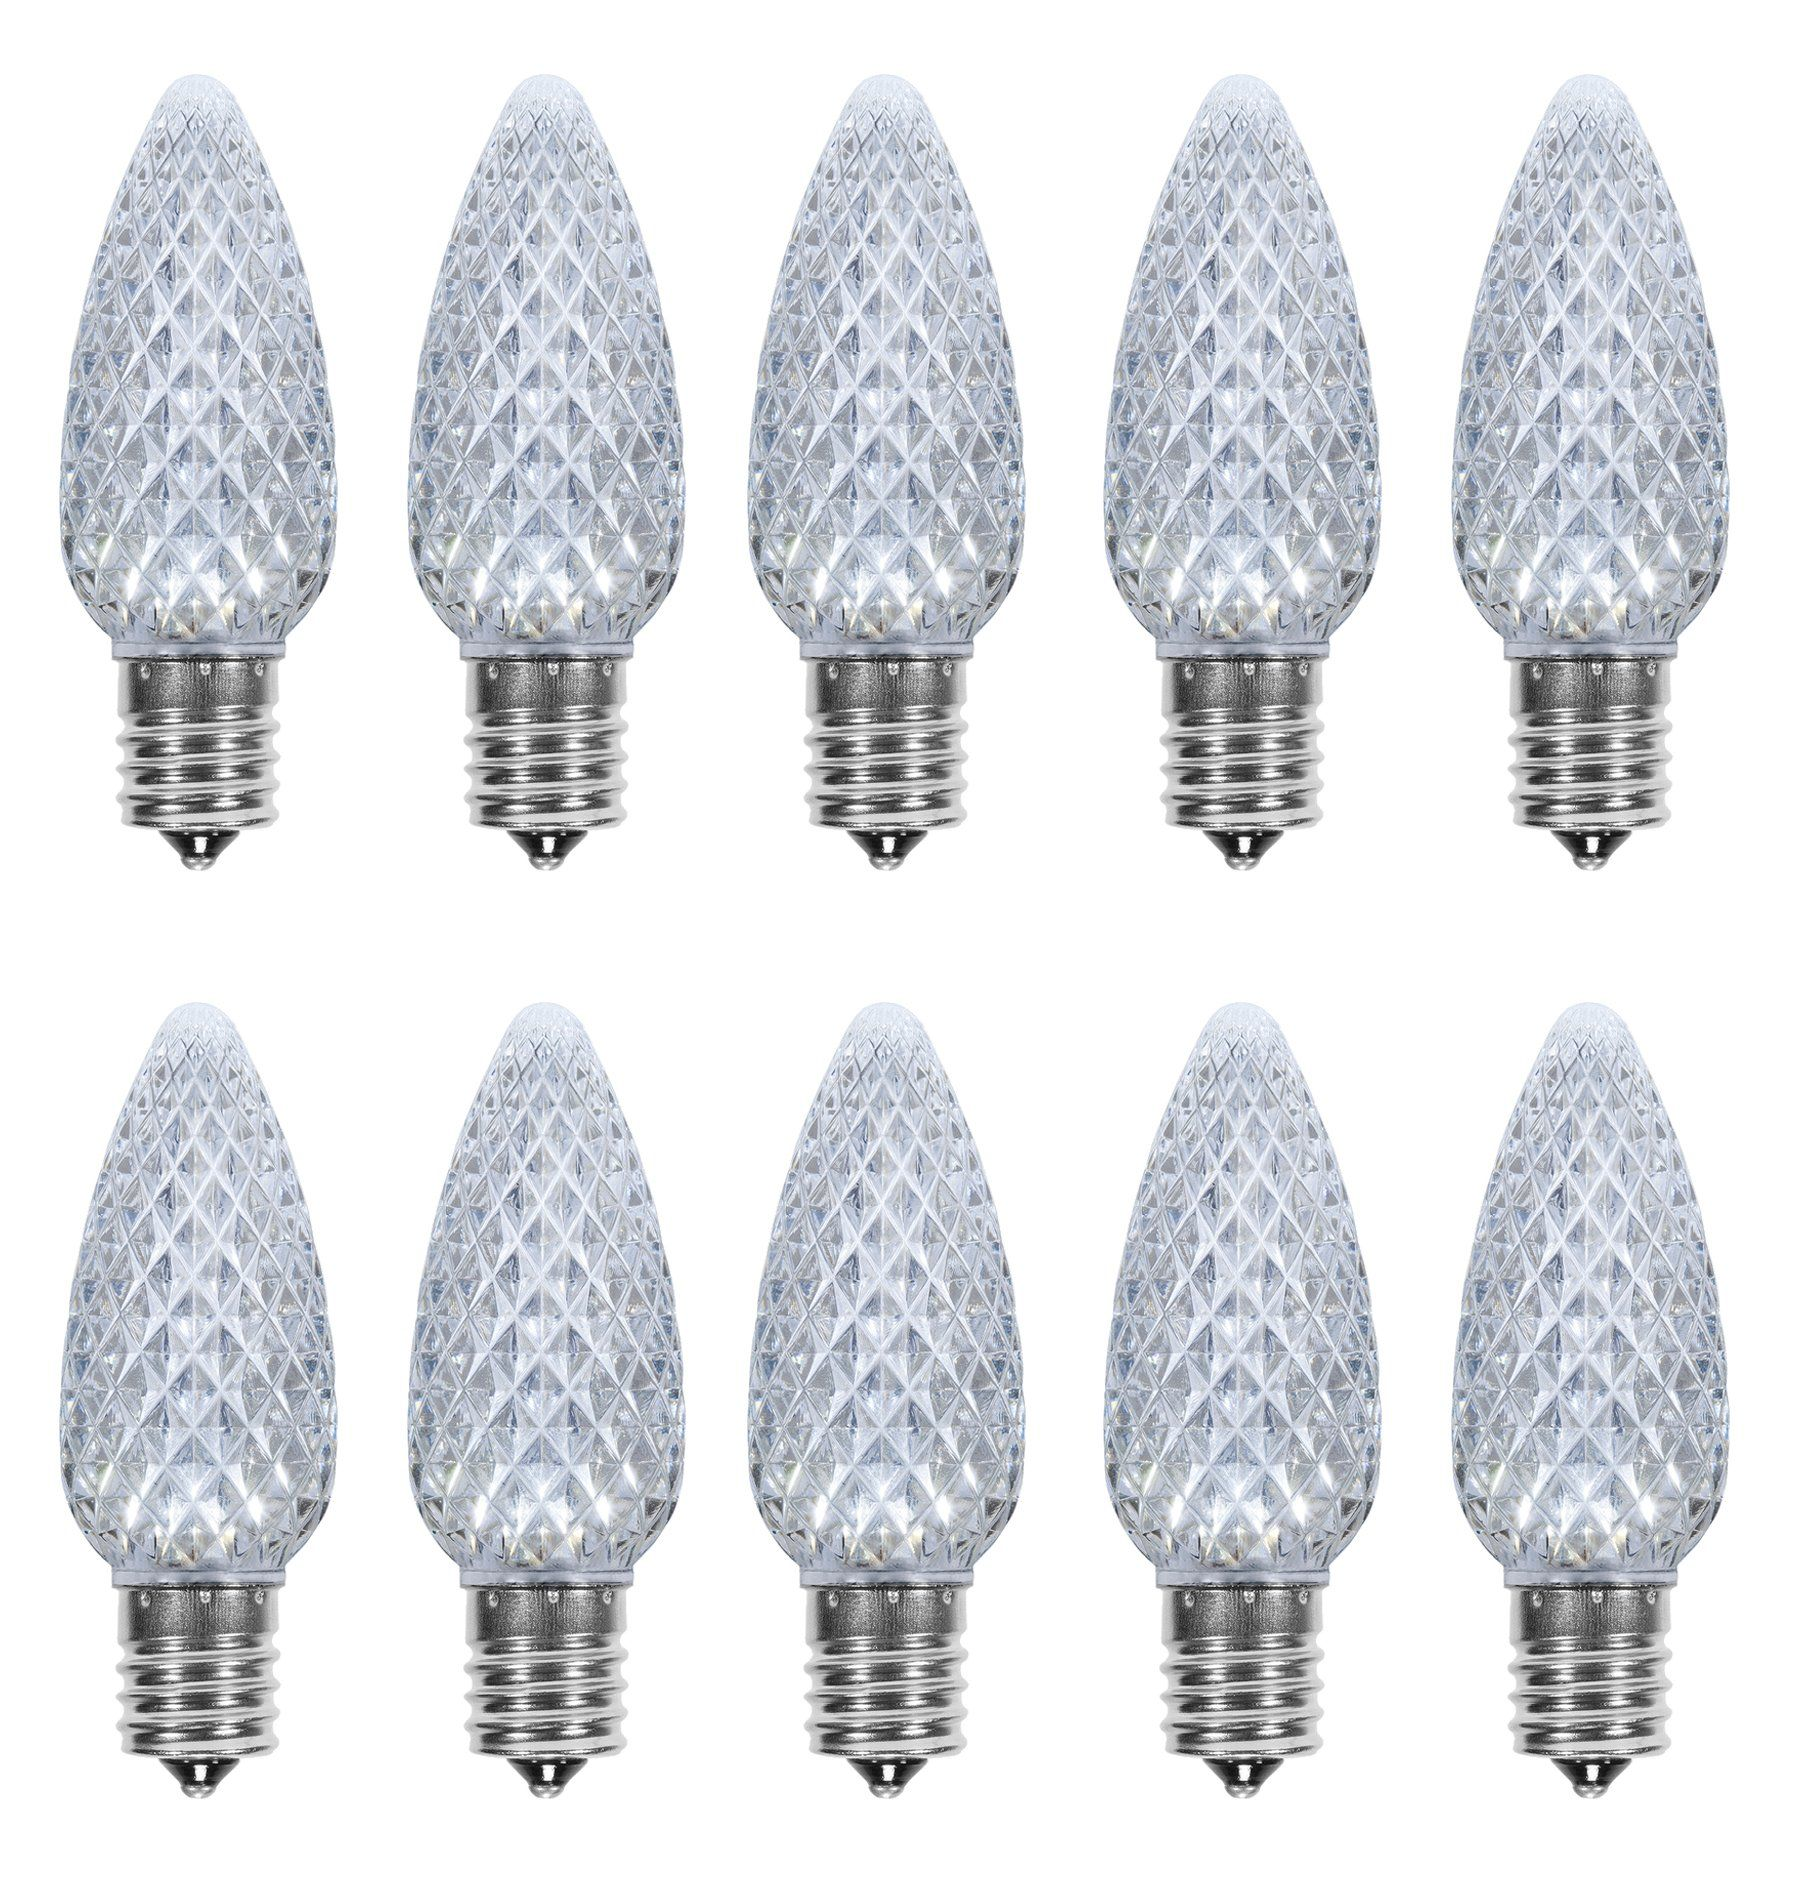 pack of 25 led c9 cool white replacement christmas light bulbs for light strand commercial grade dimmable holiday bulbs 5 diode leds in each bulbs